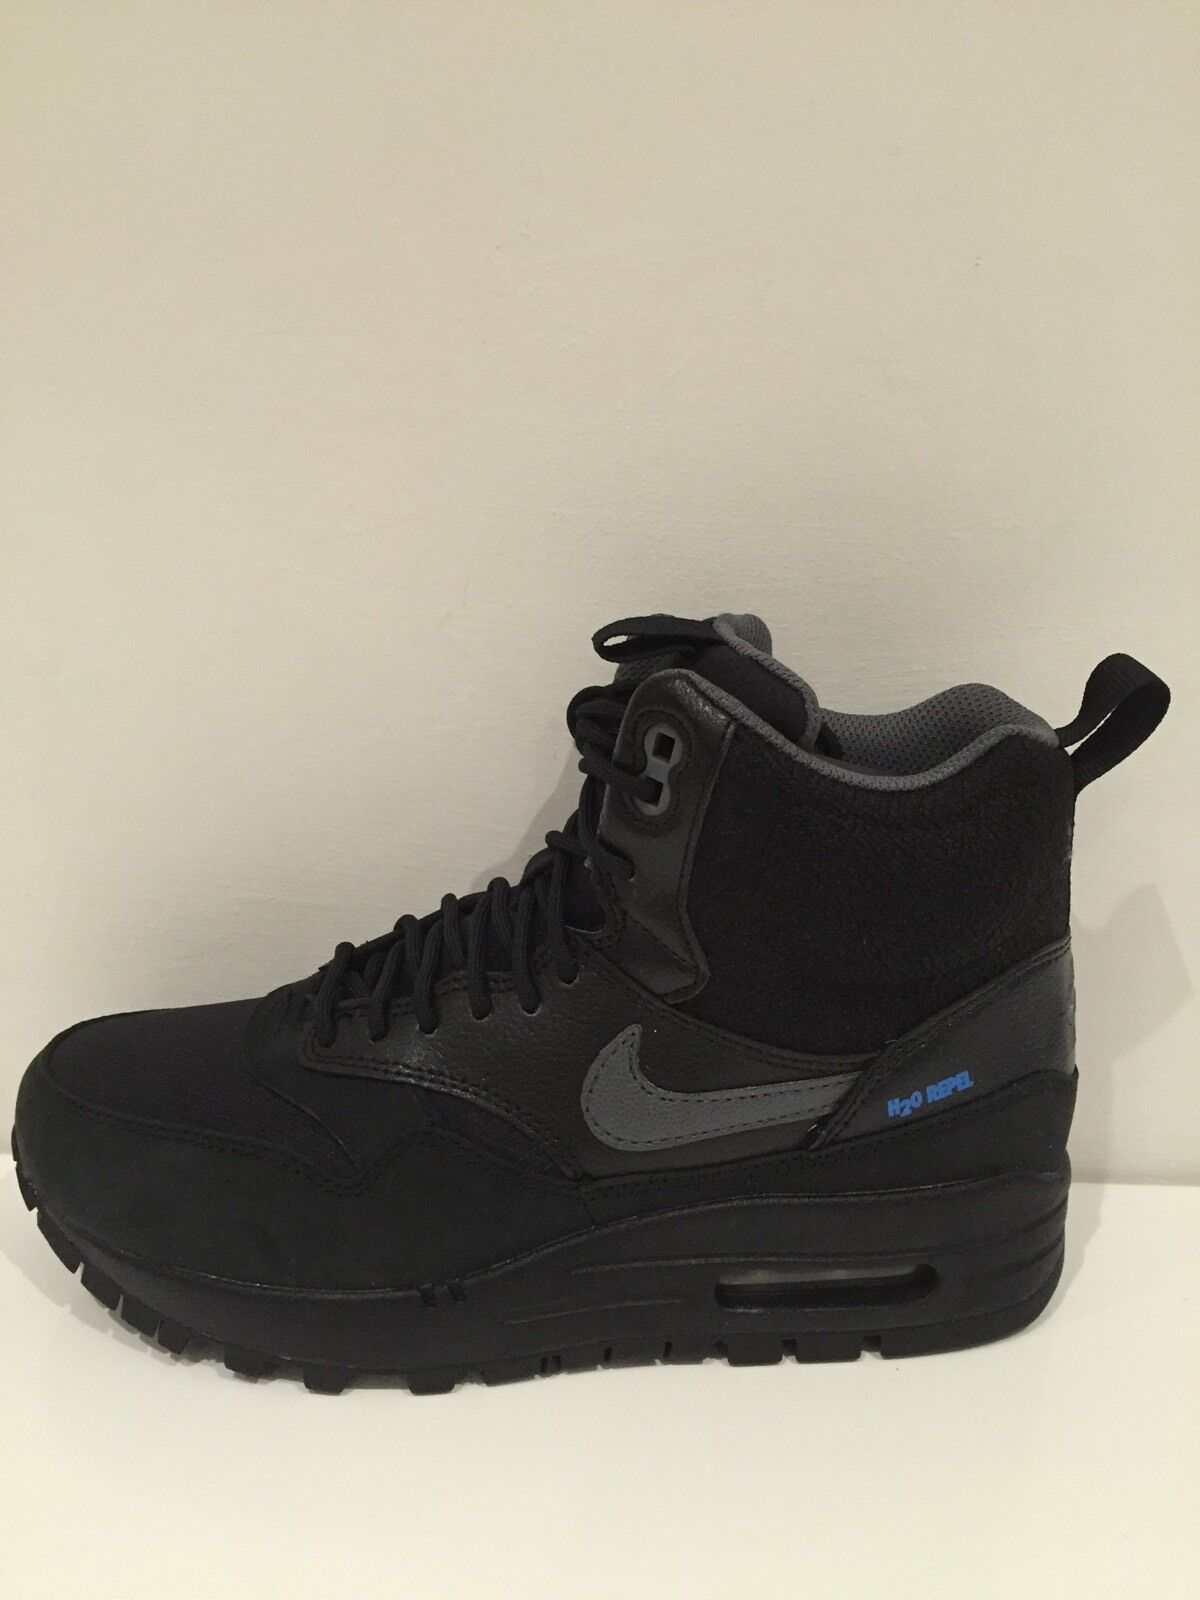 best service 2dce0 f9fd1 Nike Nike Nike Air Max 1 Sneakerboot taille 3 (UK) EntièreHommes t neuf  dans sa boîte 685225